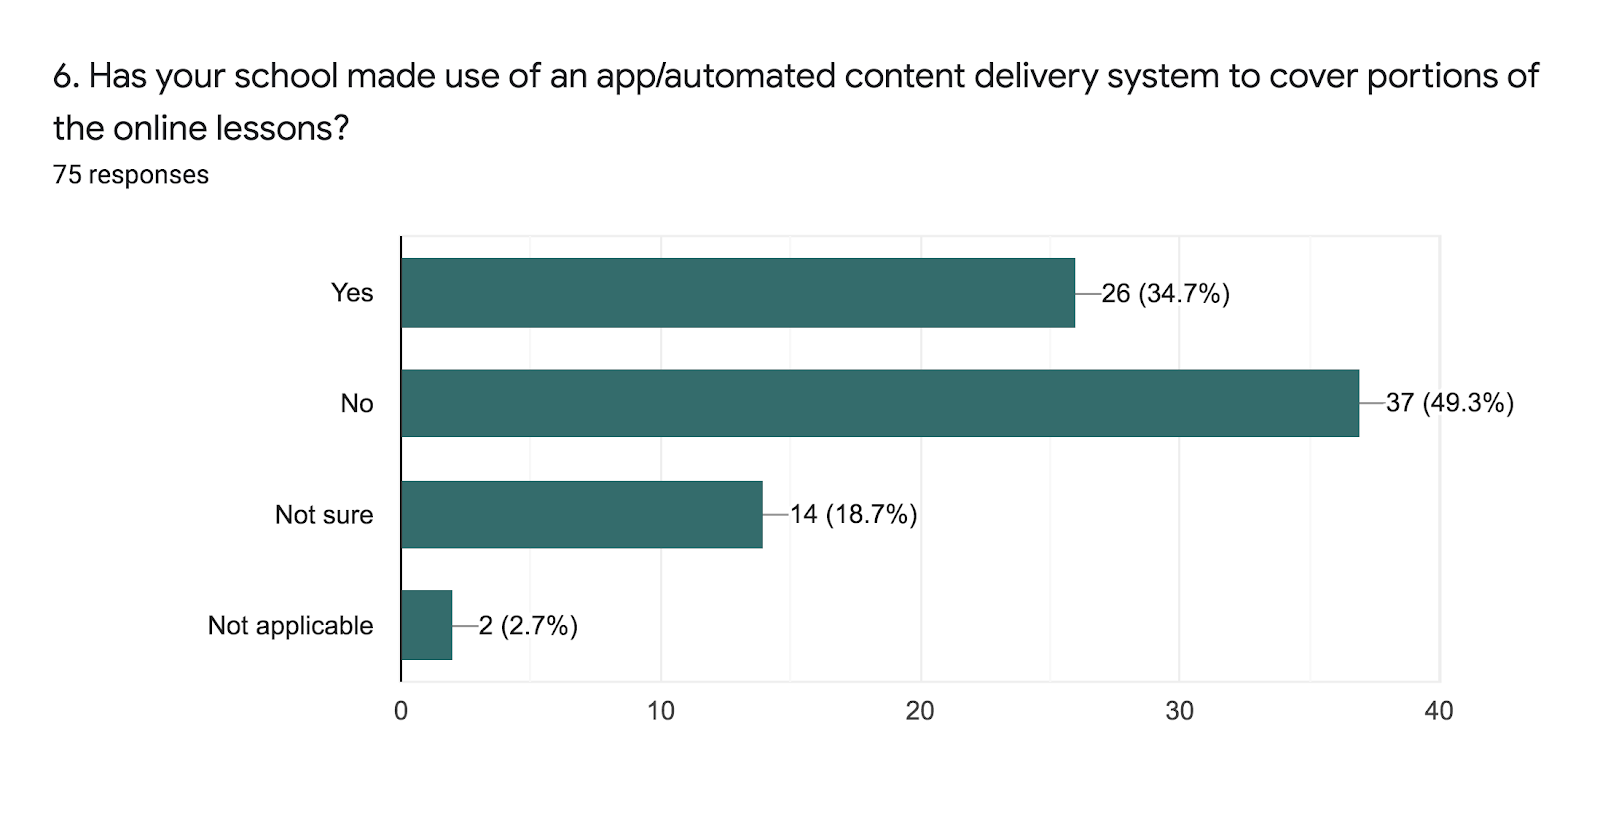 Forms response chart. Question title: 6. Has your school made use of an app/automated content delivery system to cover portions of the online lessons?. Number of responses: 75 responses.